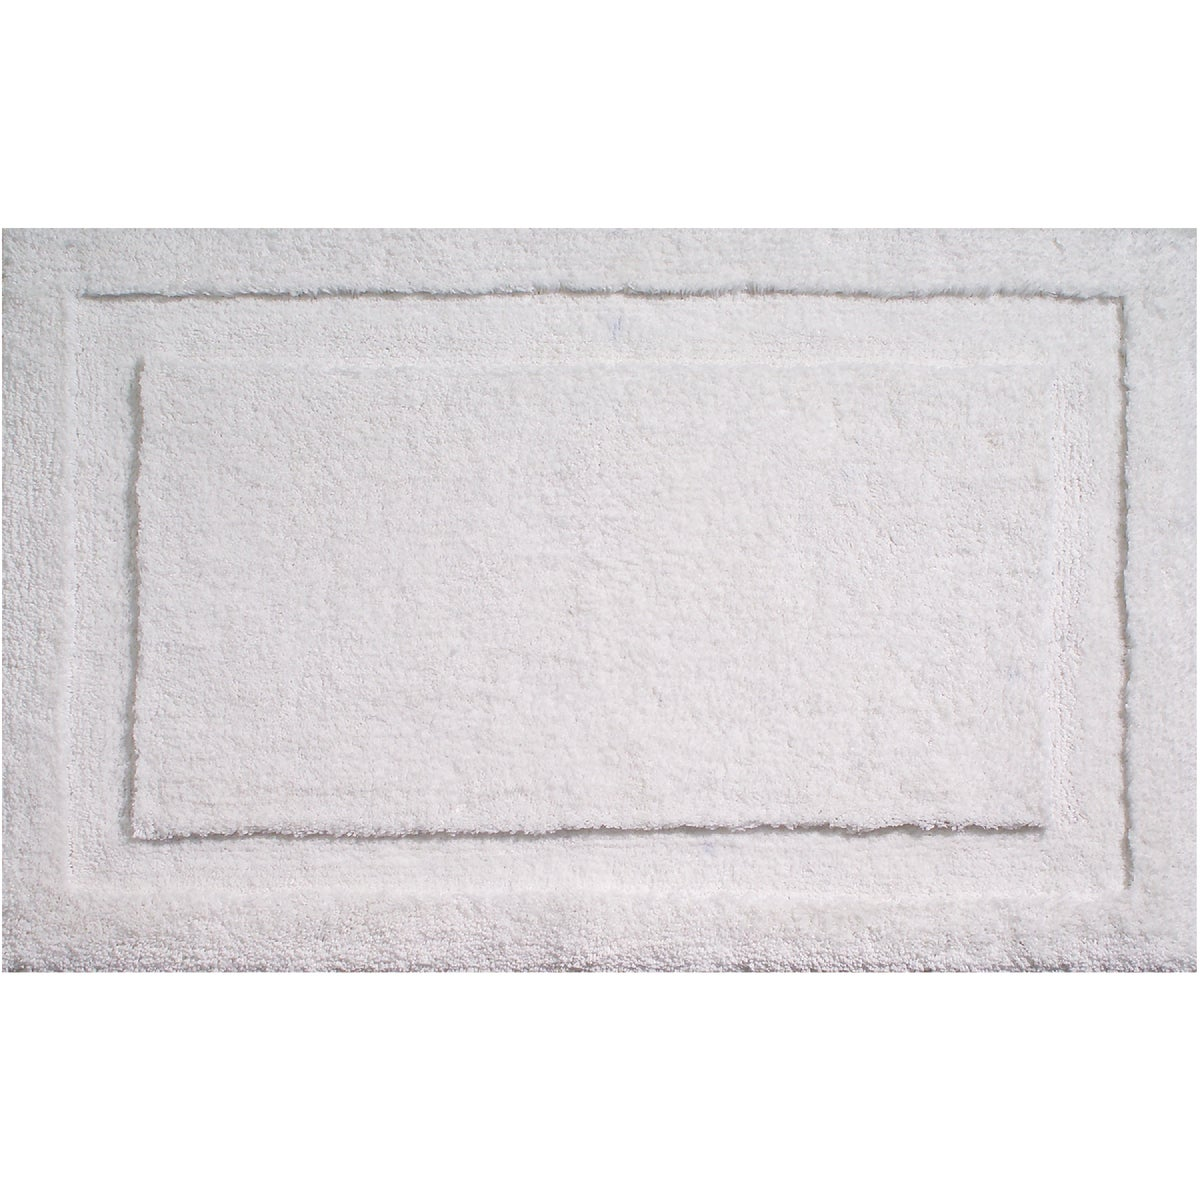 34X21 WHITE BATH RUG - 17050 by Interdesign Inc